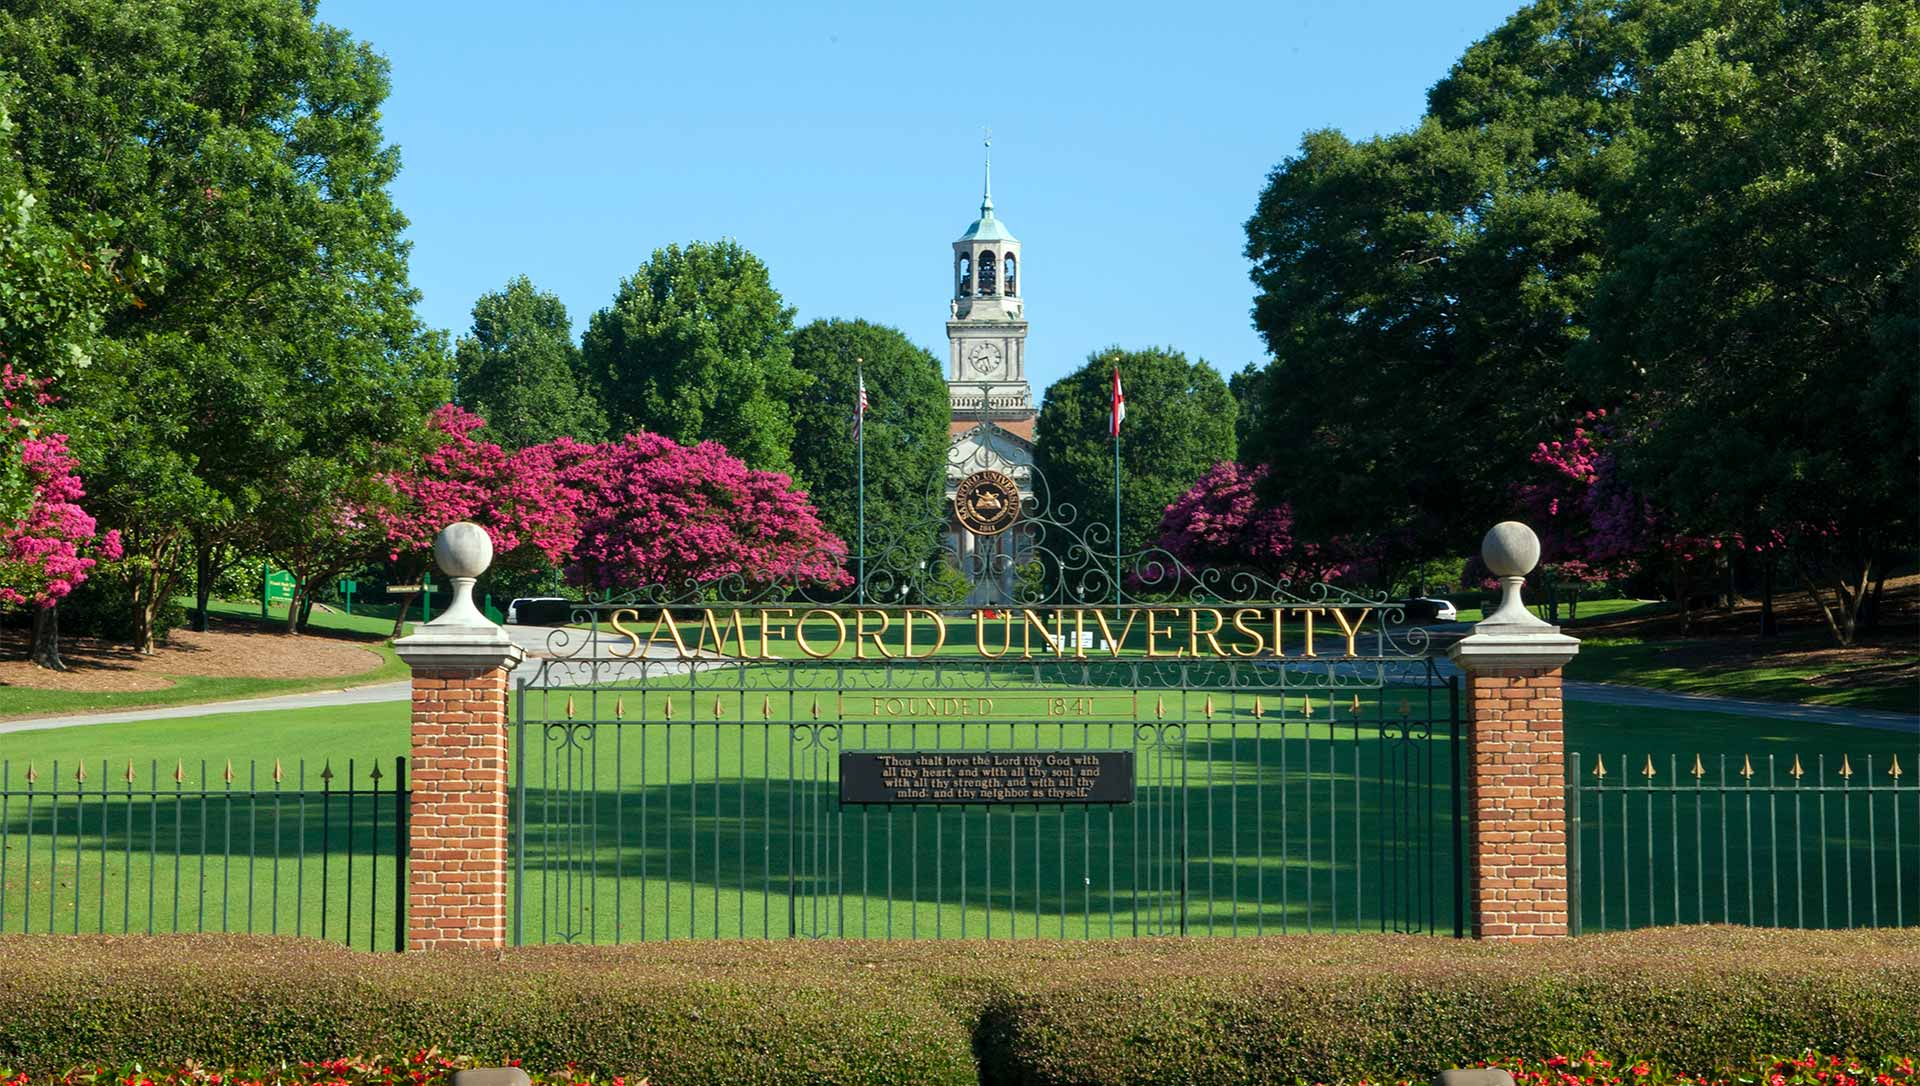 9 from Pinson, 17 from Trussville make Dean's List at Samford University